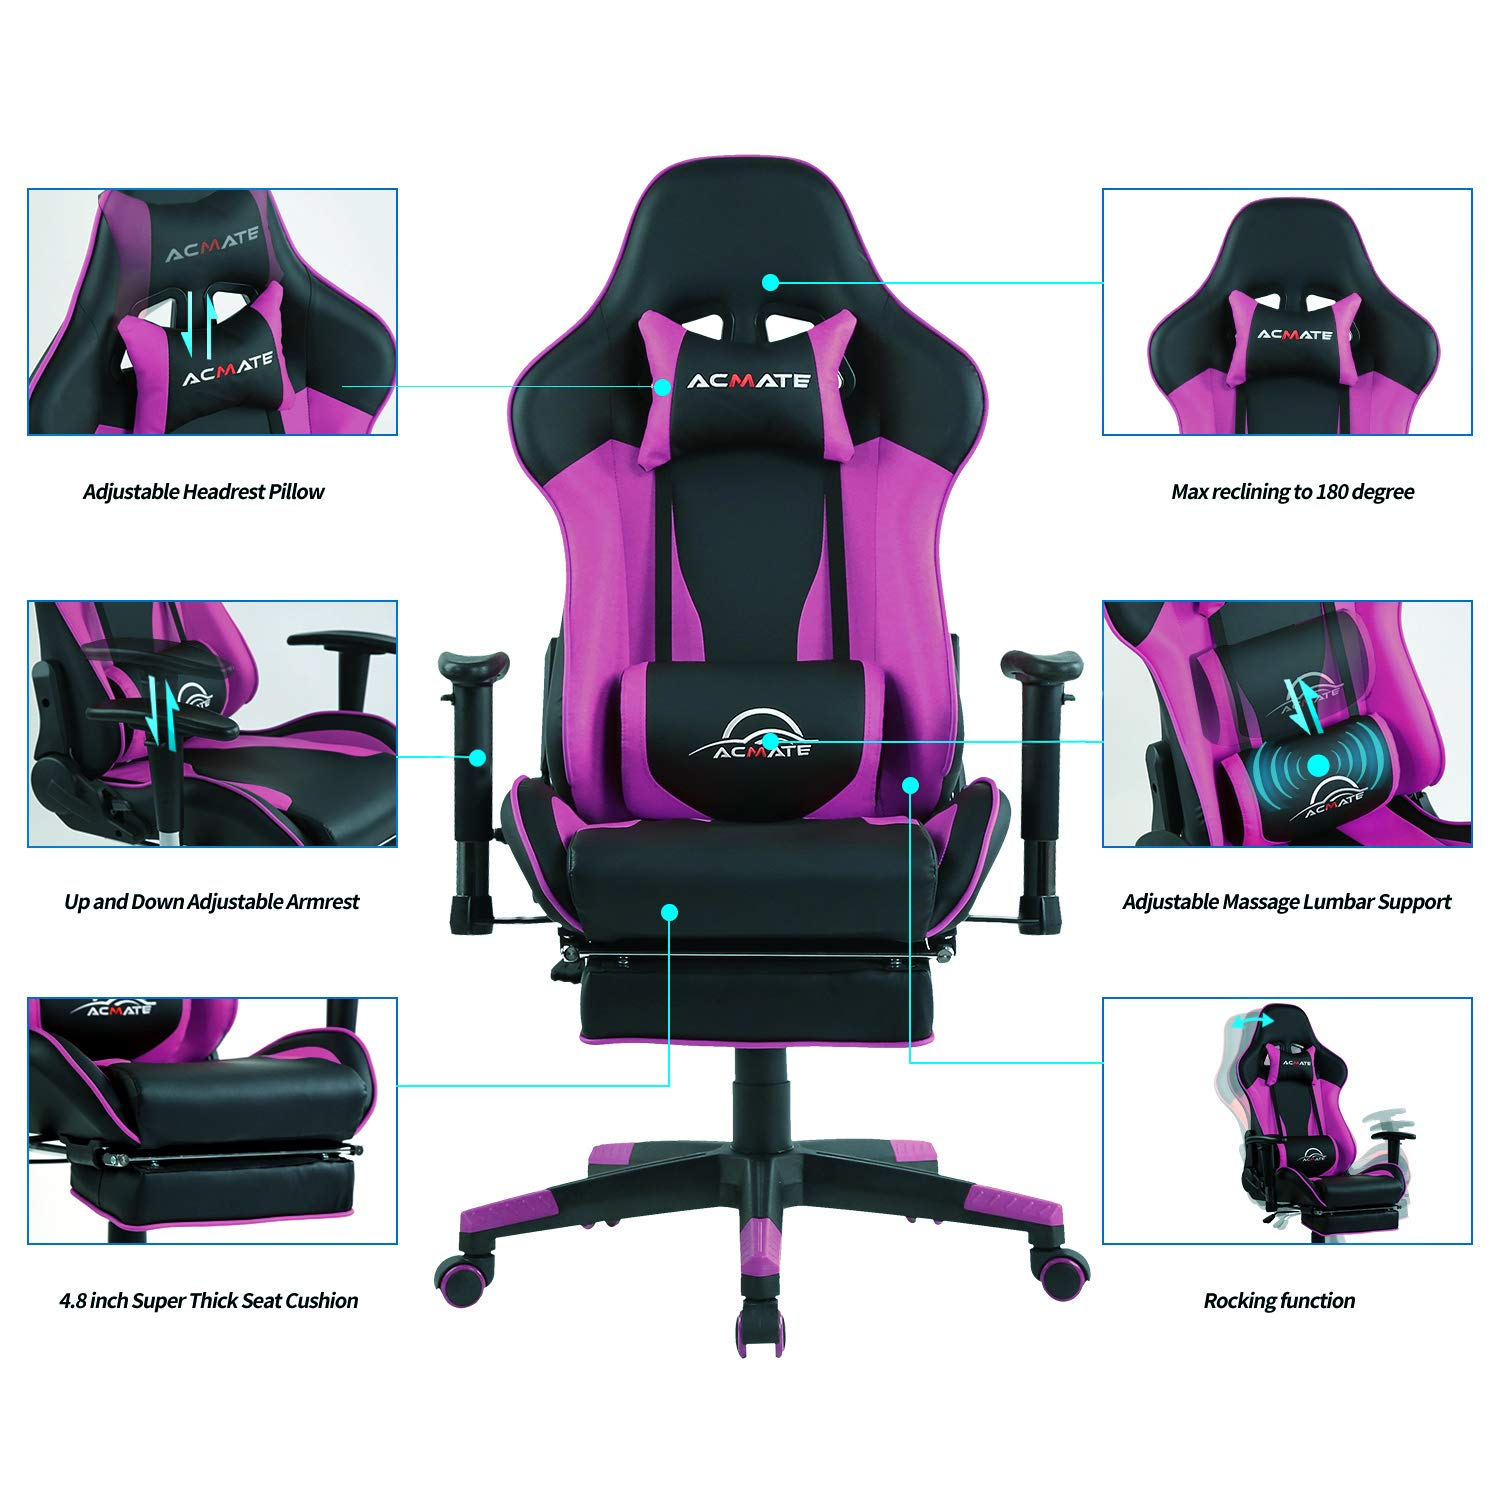 Acmate Gaming Chair Massage Gaming Computer Chair with Footrest Reclining Home Office Chair Racing Style Gamer Chair High Back Gaming Desk Chair with Headrest and Lumbar Support Purple Black